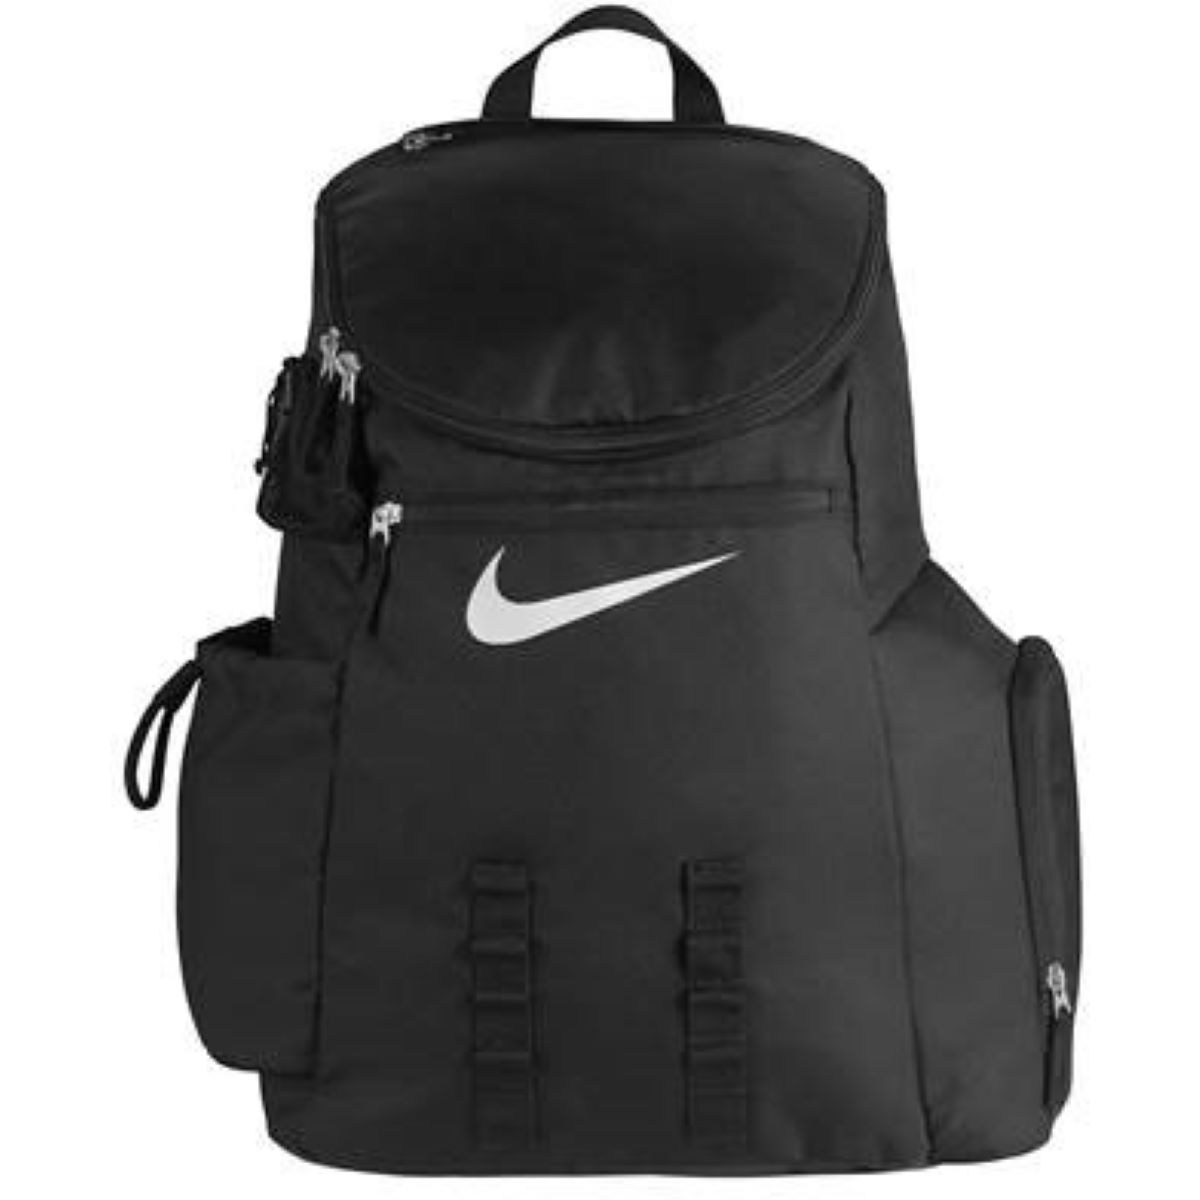 Nike team deck backpack internal black ss18 ness7159 001